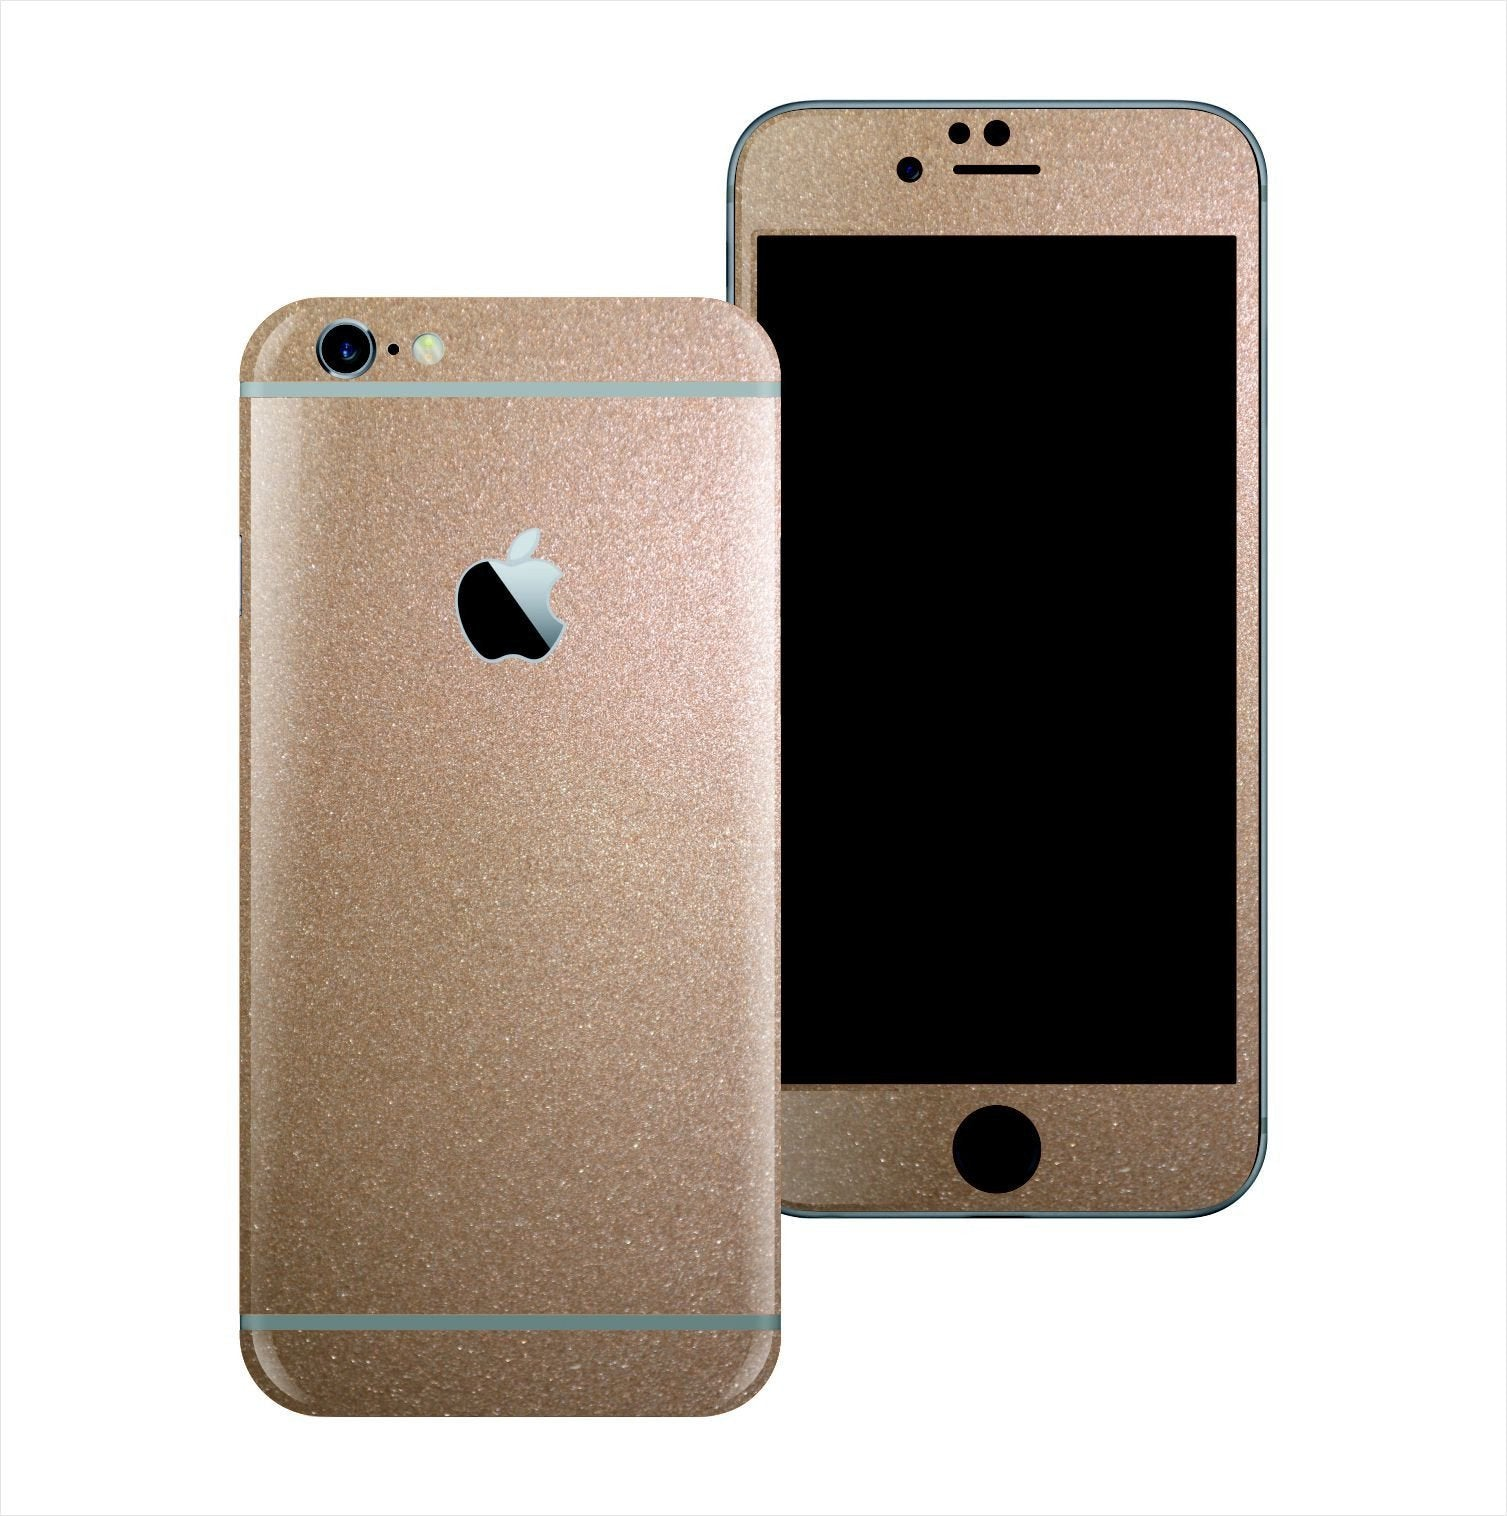 iPhone 6 Plus Glossy Bronze Antique Metallic Skin Wrap Sticker Cover Protector Decal by EasySkinz